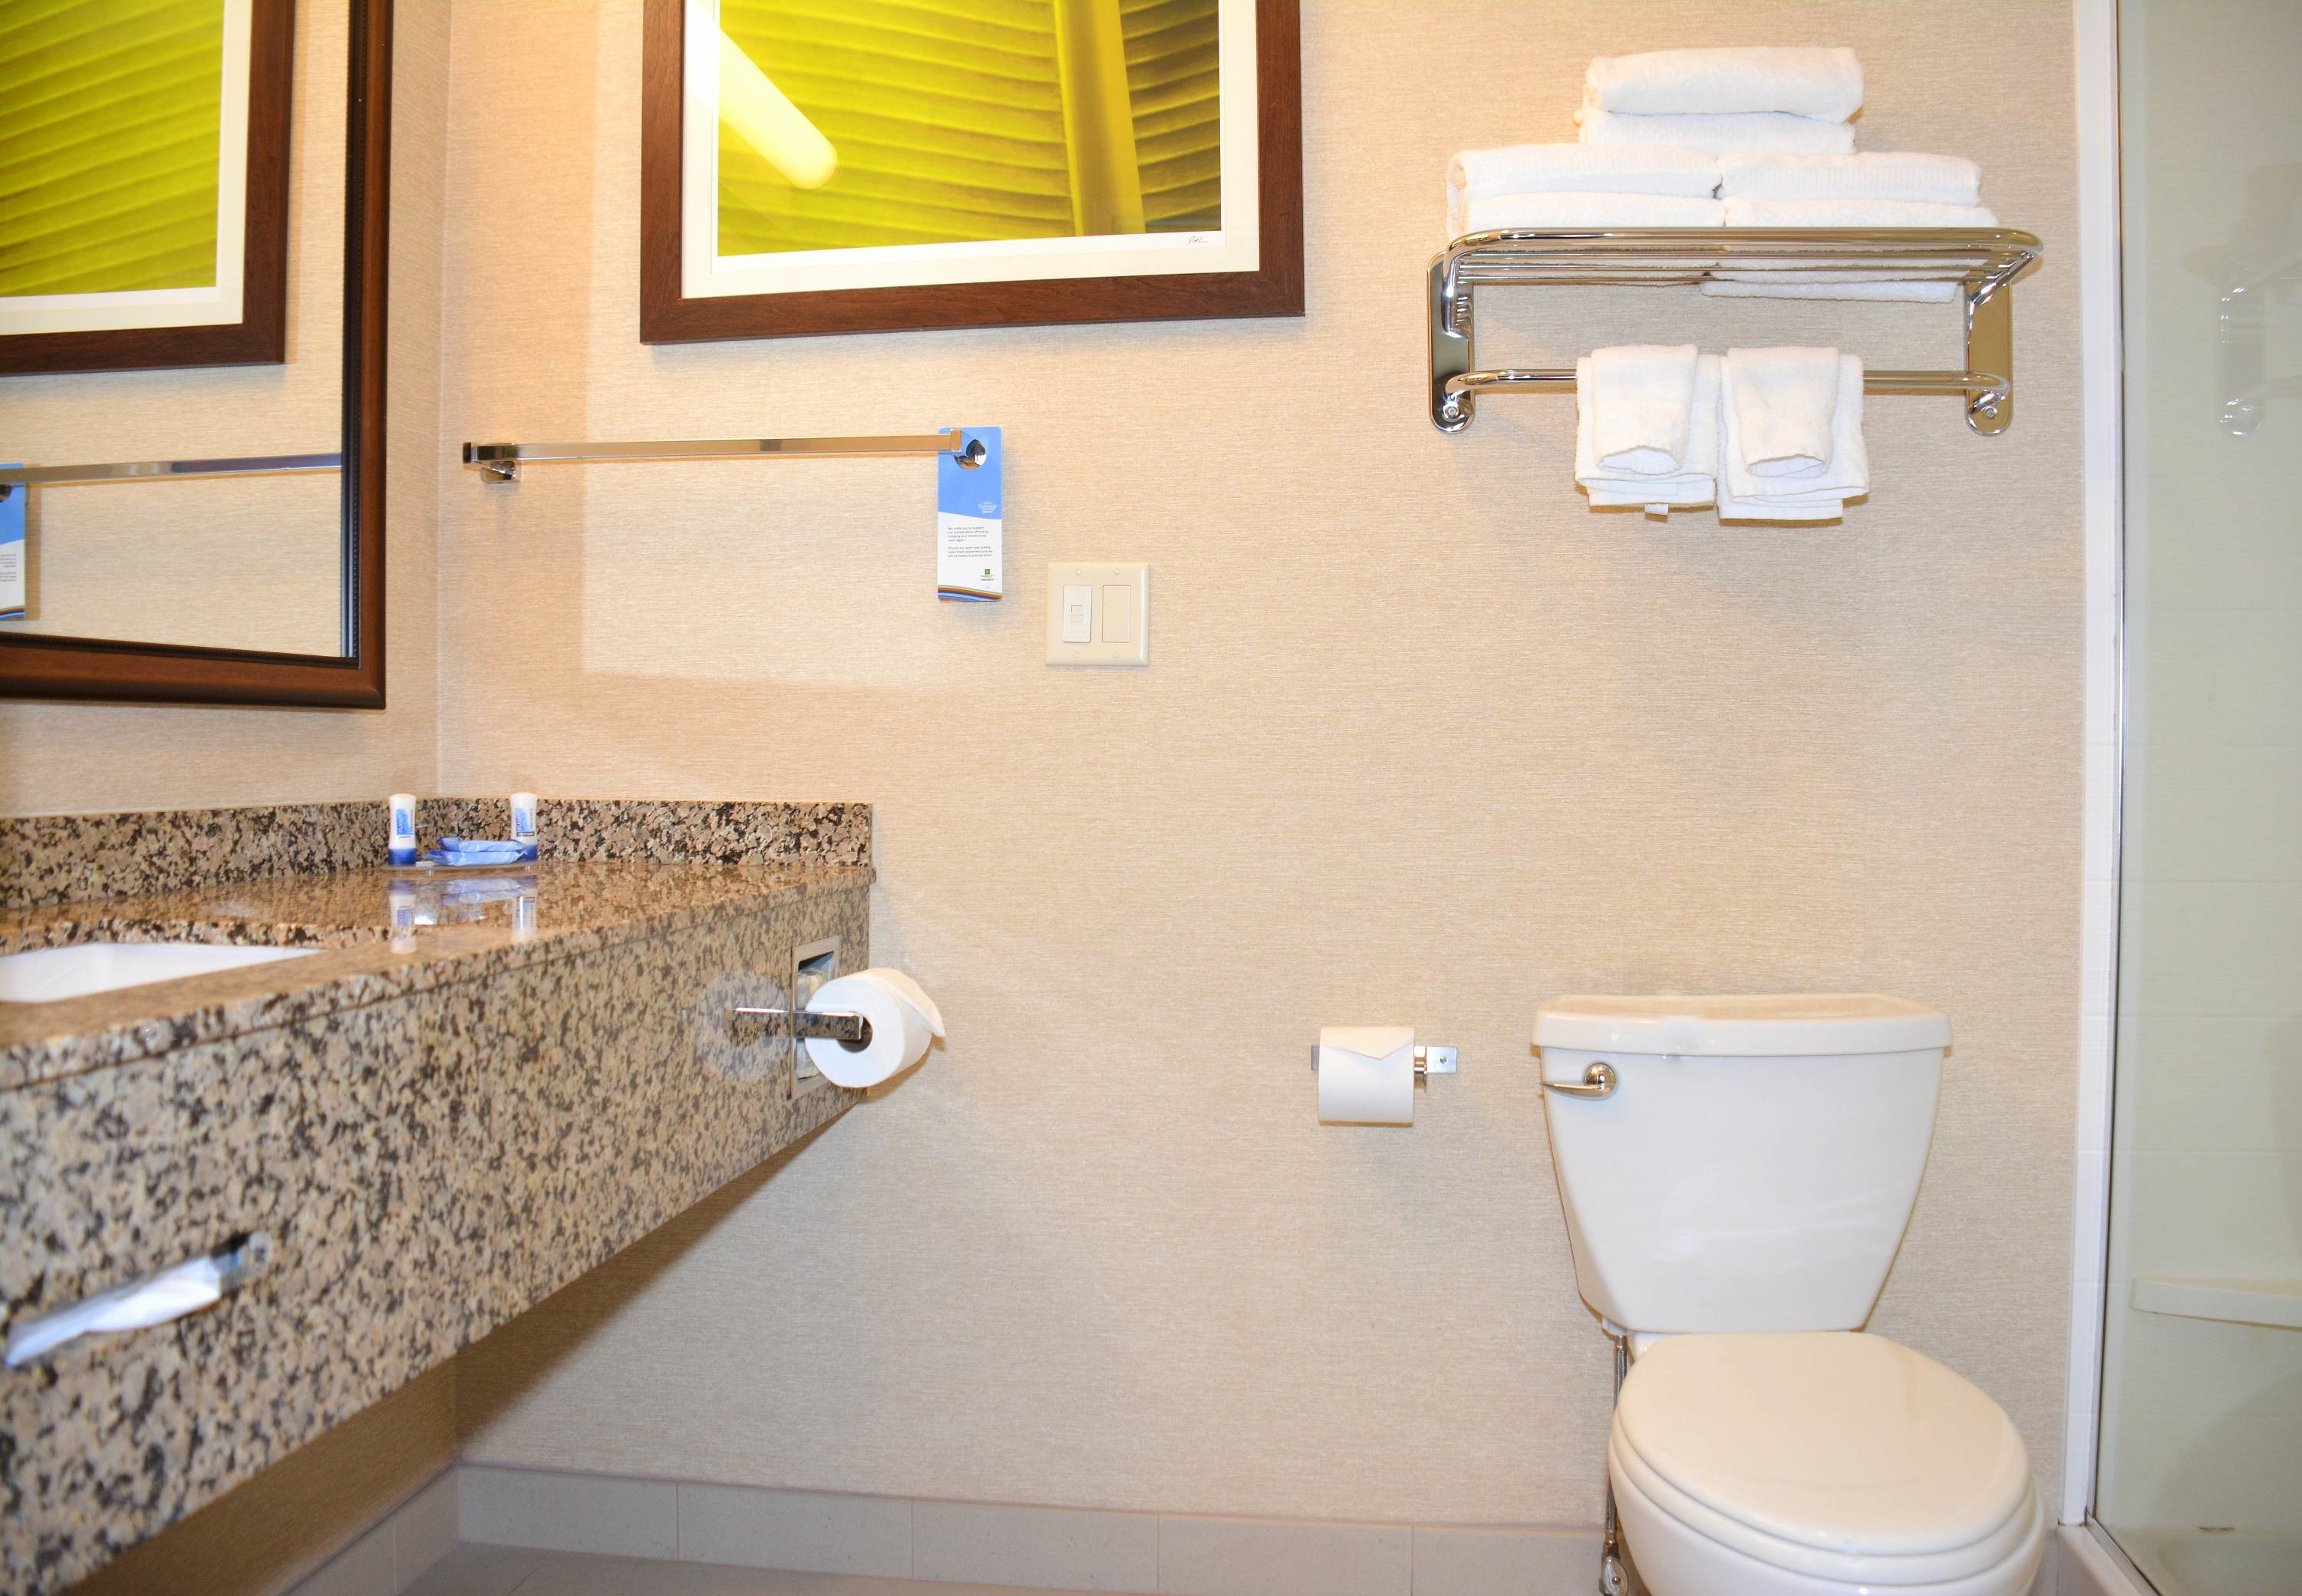 Fairfield Inn & Suites by Marriott Grand Junction Downtown/Historic Main Street image 12